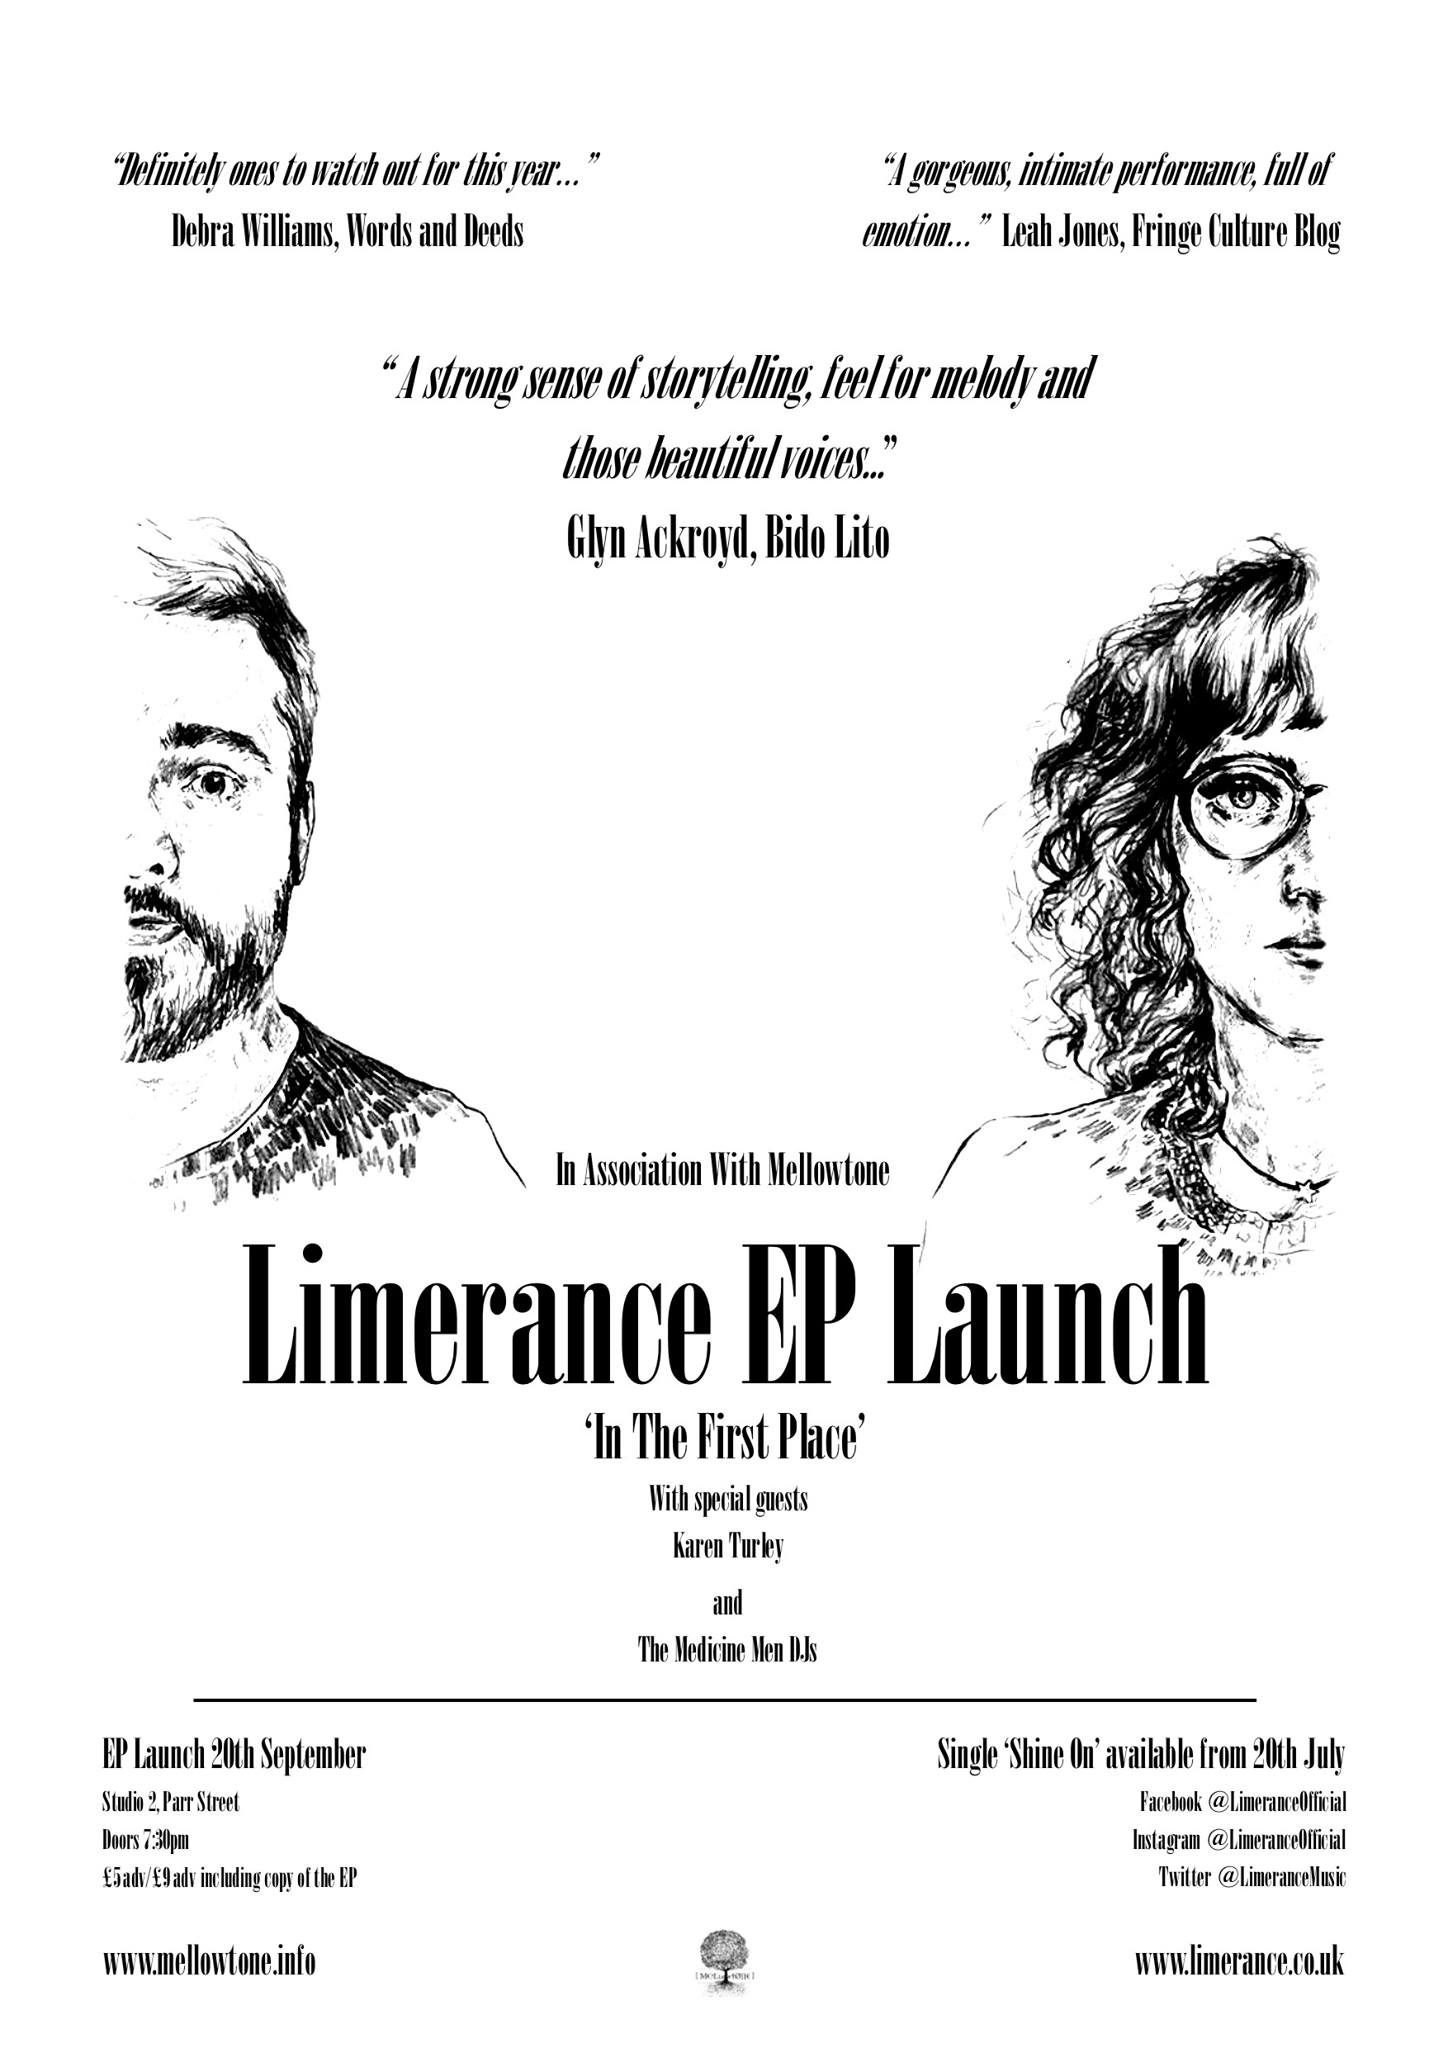 limerance ep launch poster